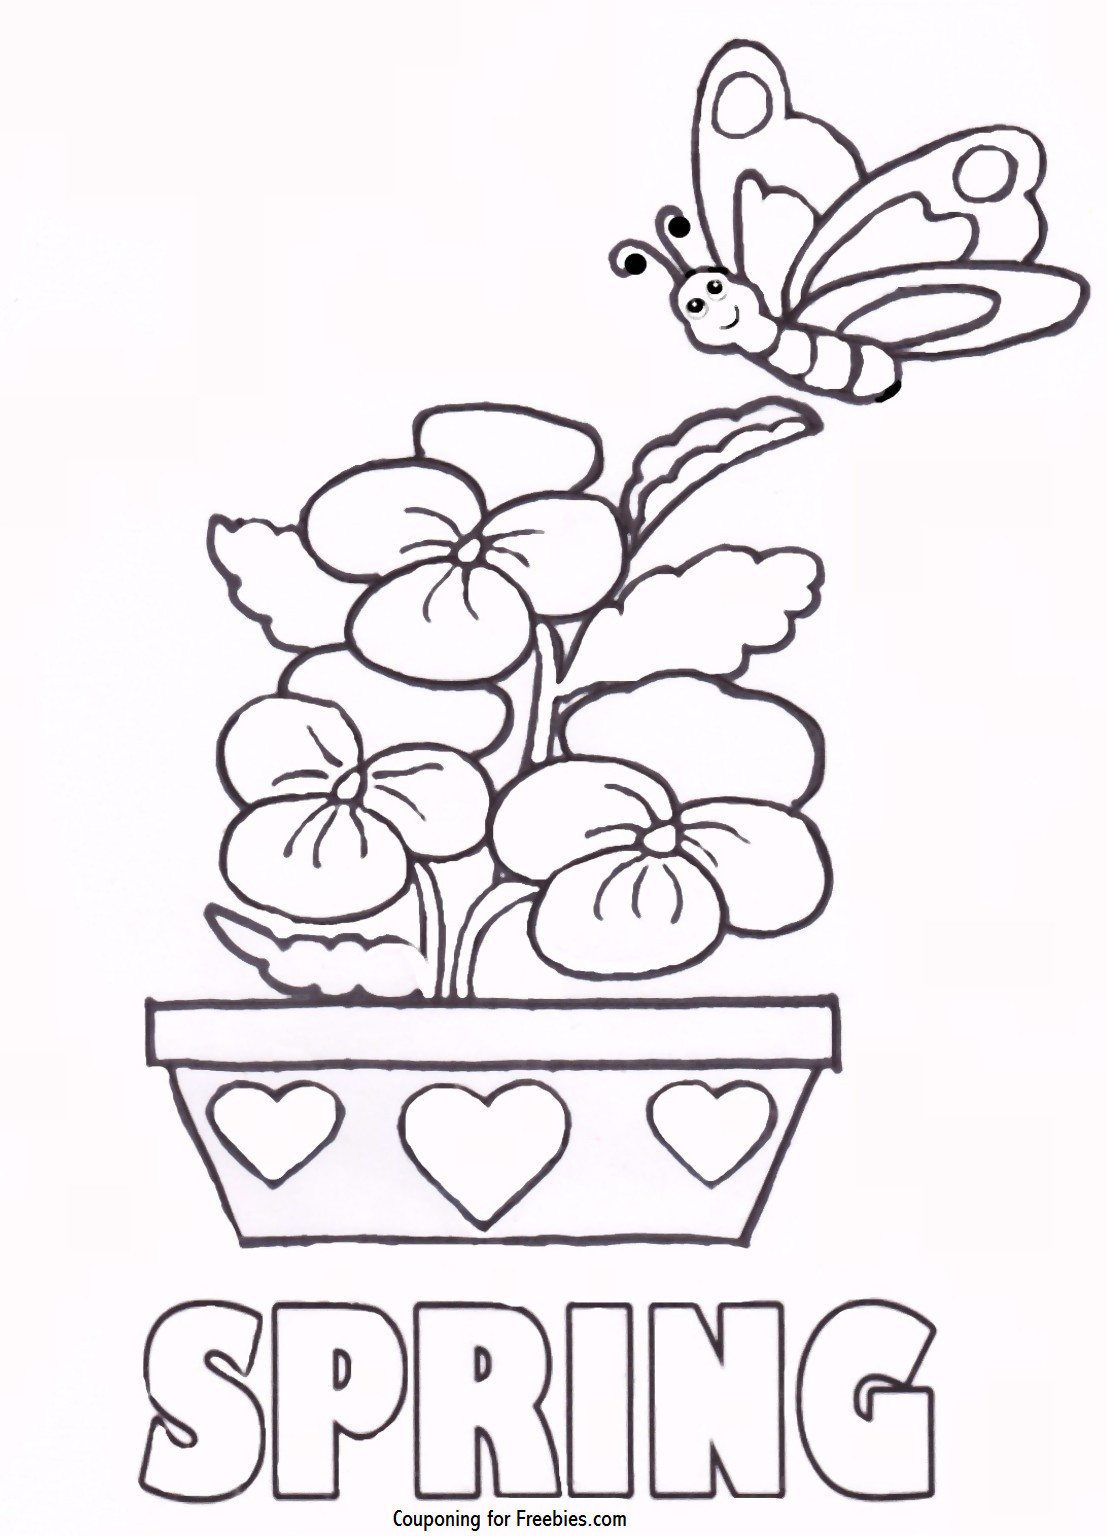 Spring Coloring Pages Free Printable  FREE Printable Coloring Page With Spring Theme FREE For